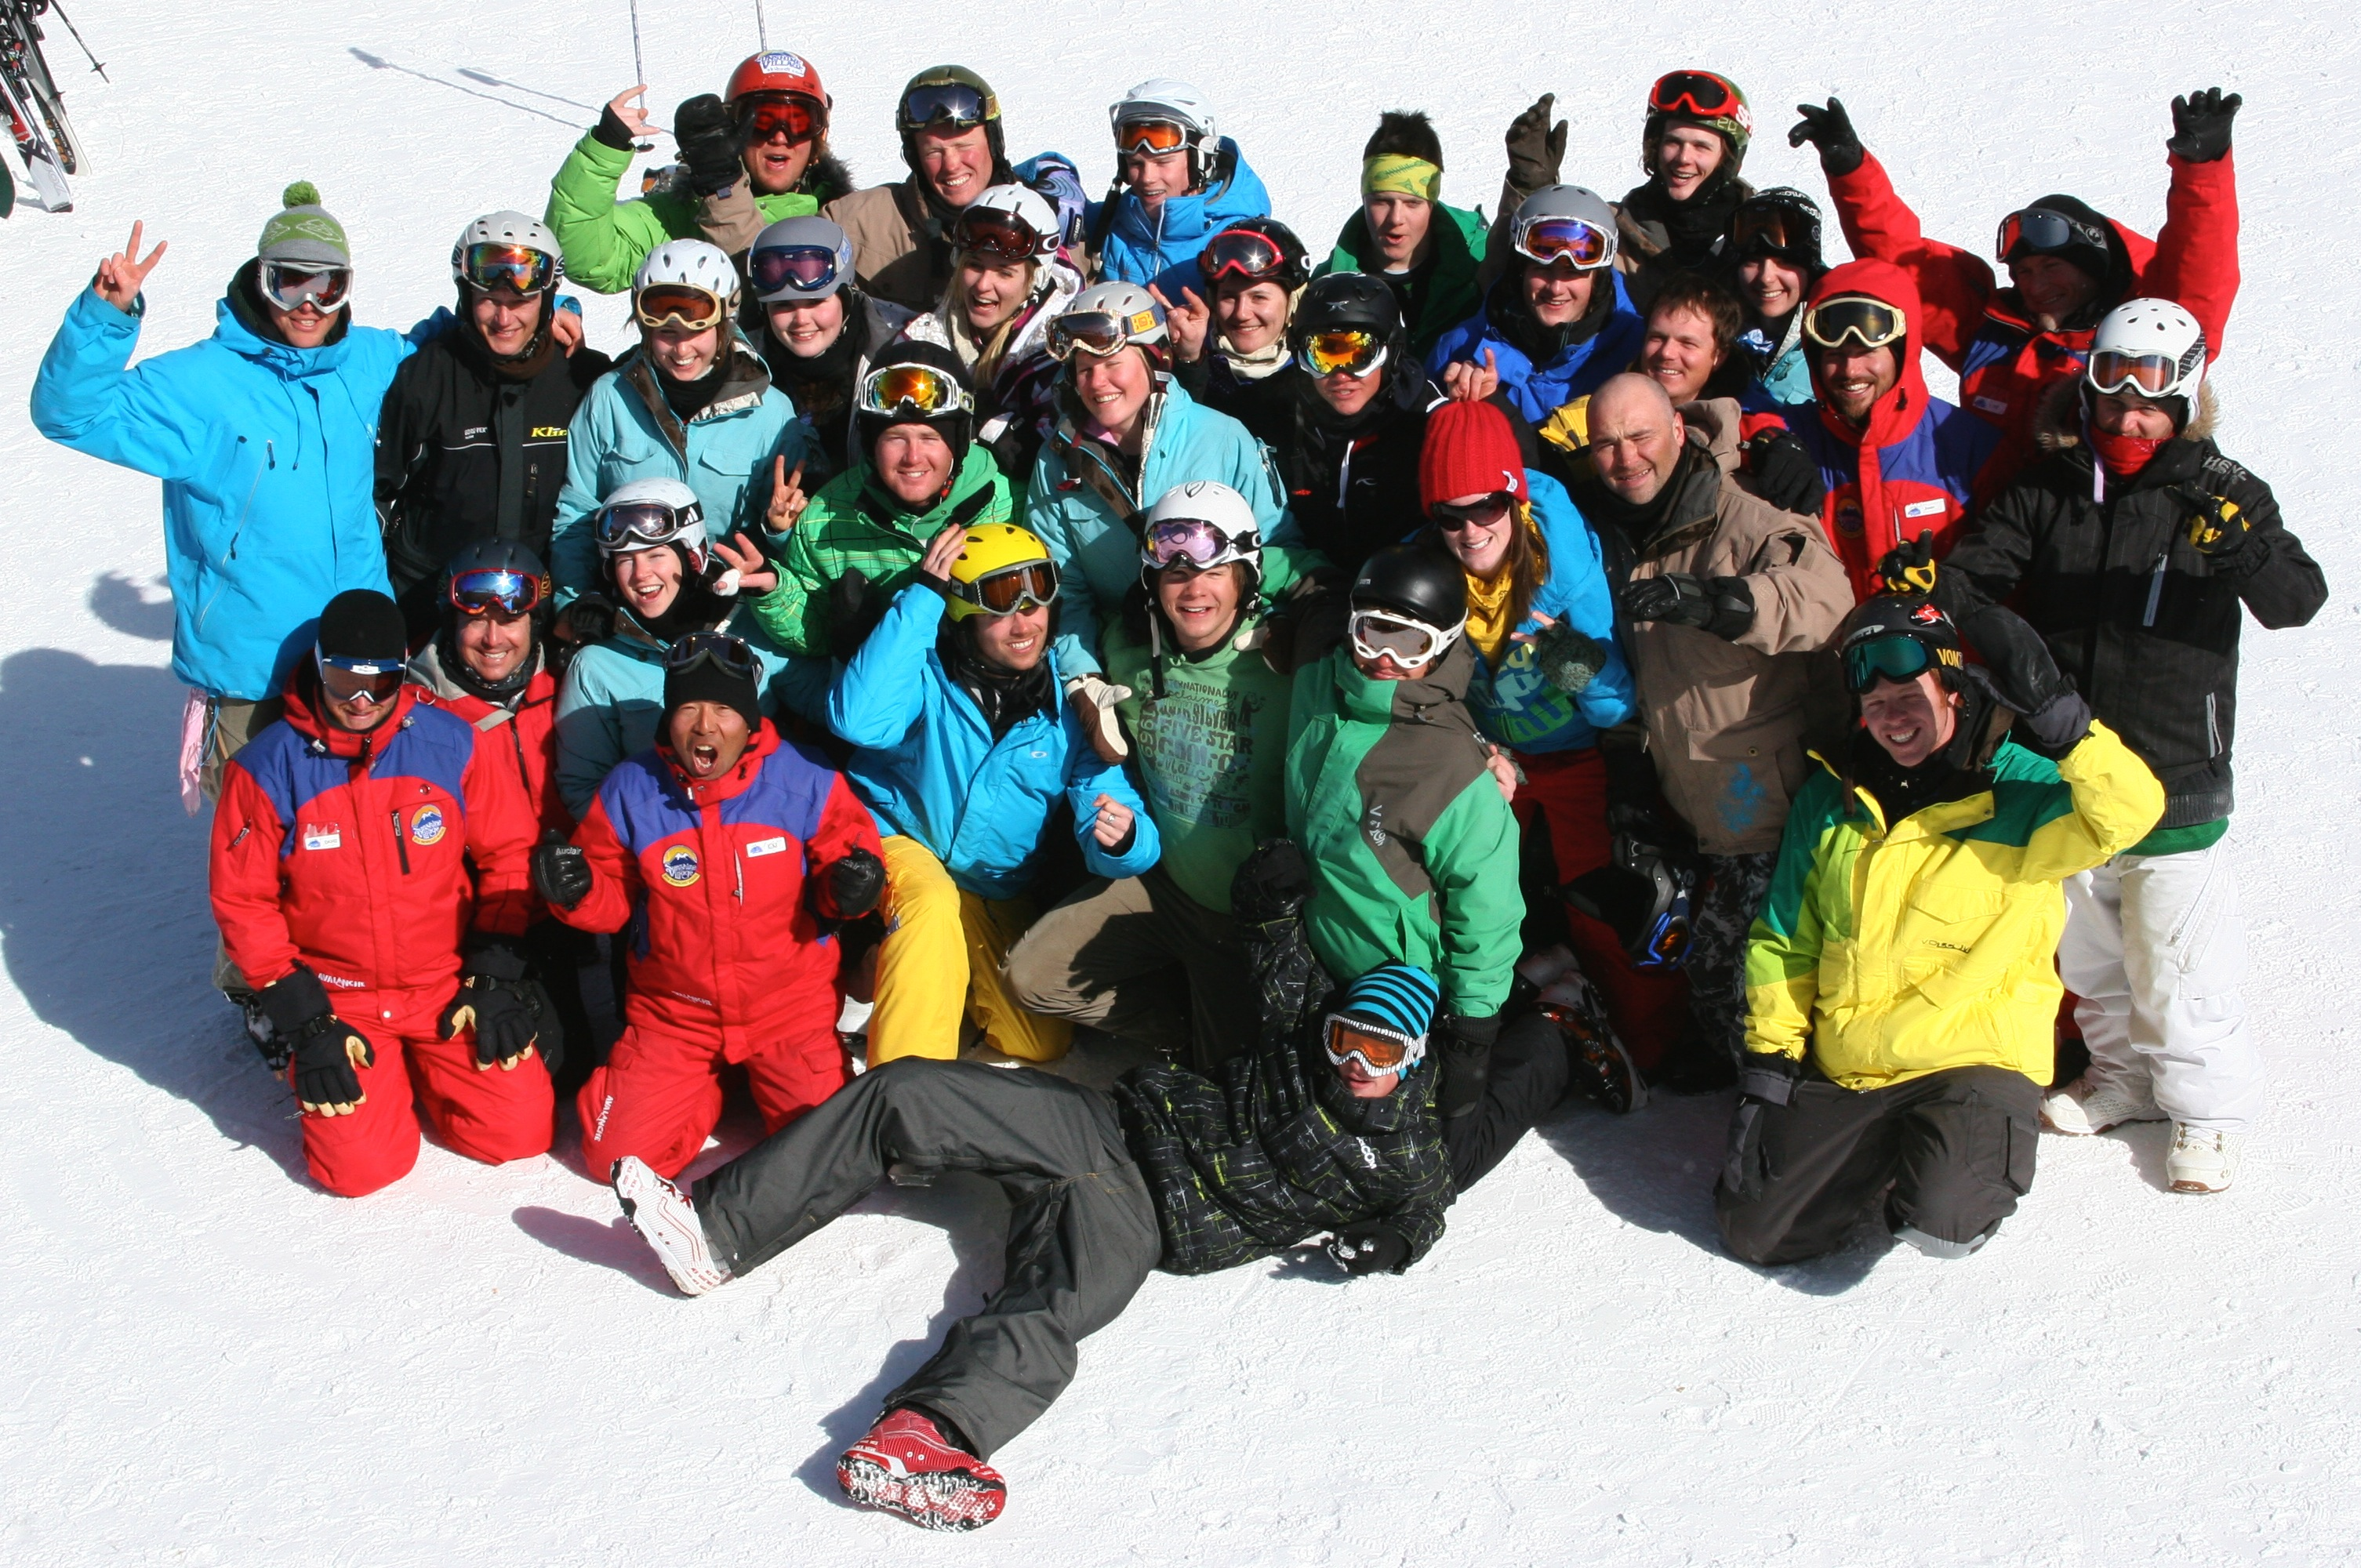 An image from the Banff Ski or Snowboard Instructor Course course